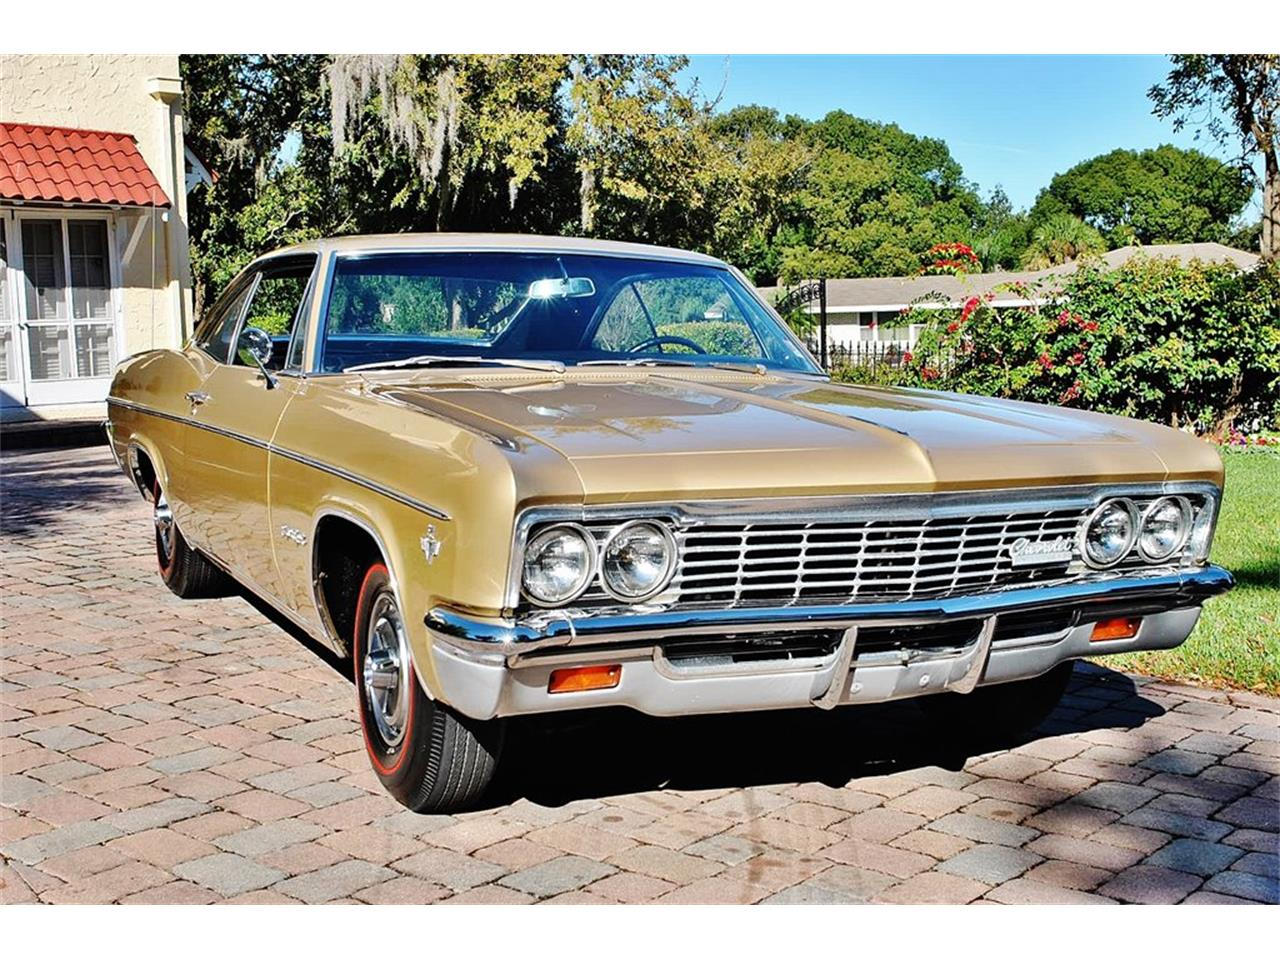 1966 Chevrolet Impala SS for sale in Lakeland, FL